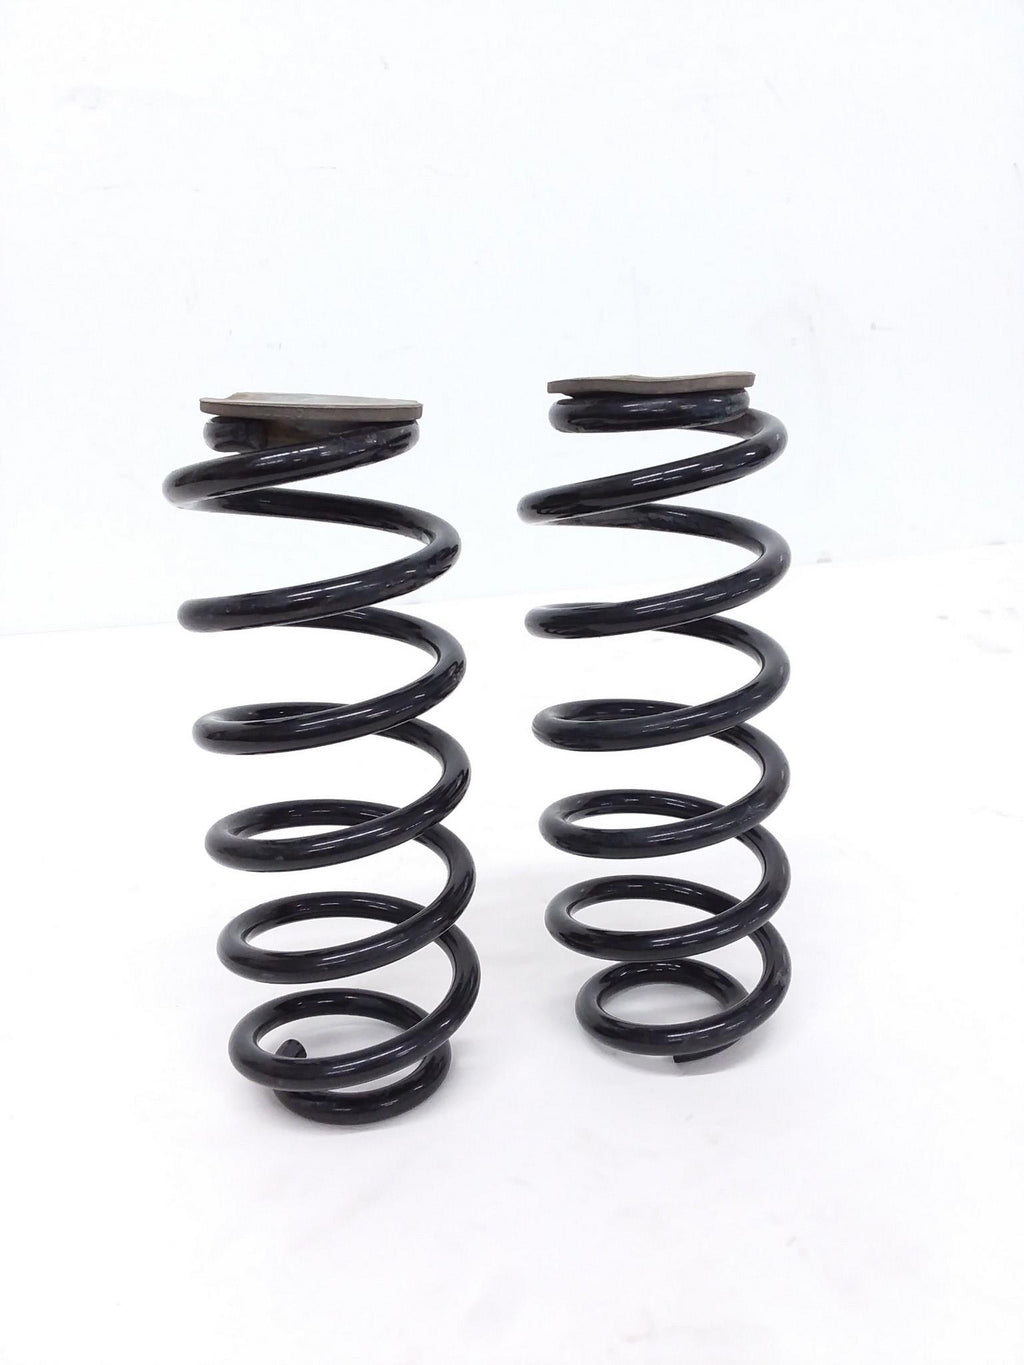 08 09 10 11 12 13 14 Smart ForTwo Rear Left Right Coil Spring Springs Pair OEM - Click Receive Auto Parts